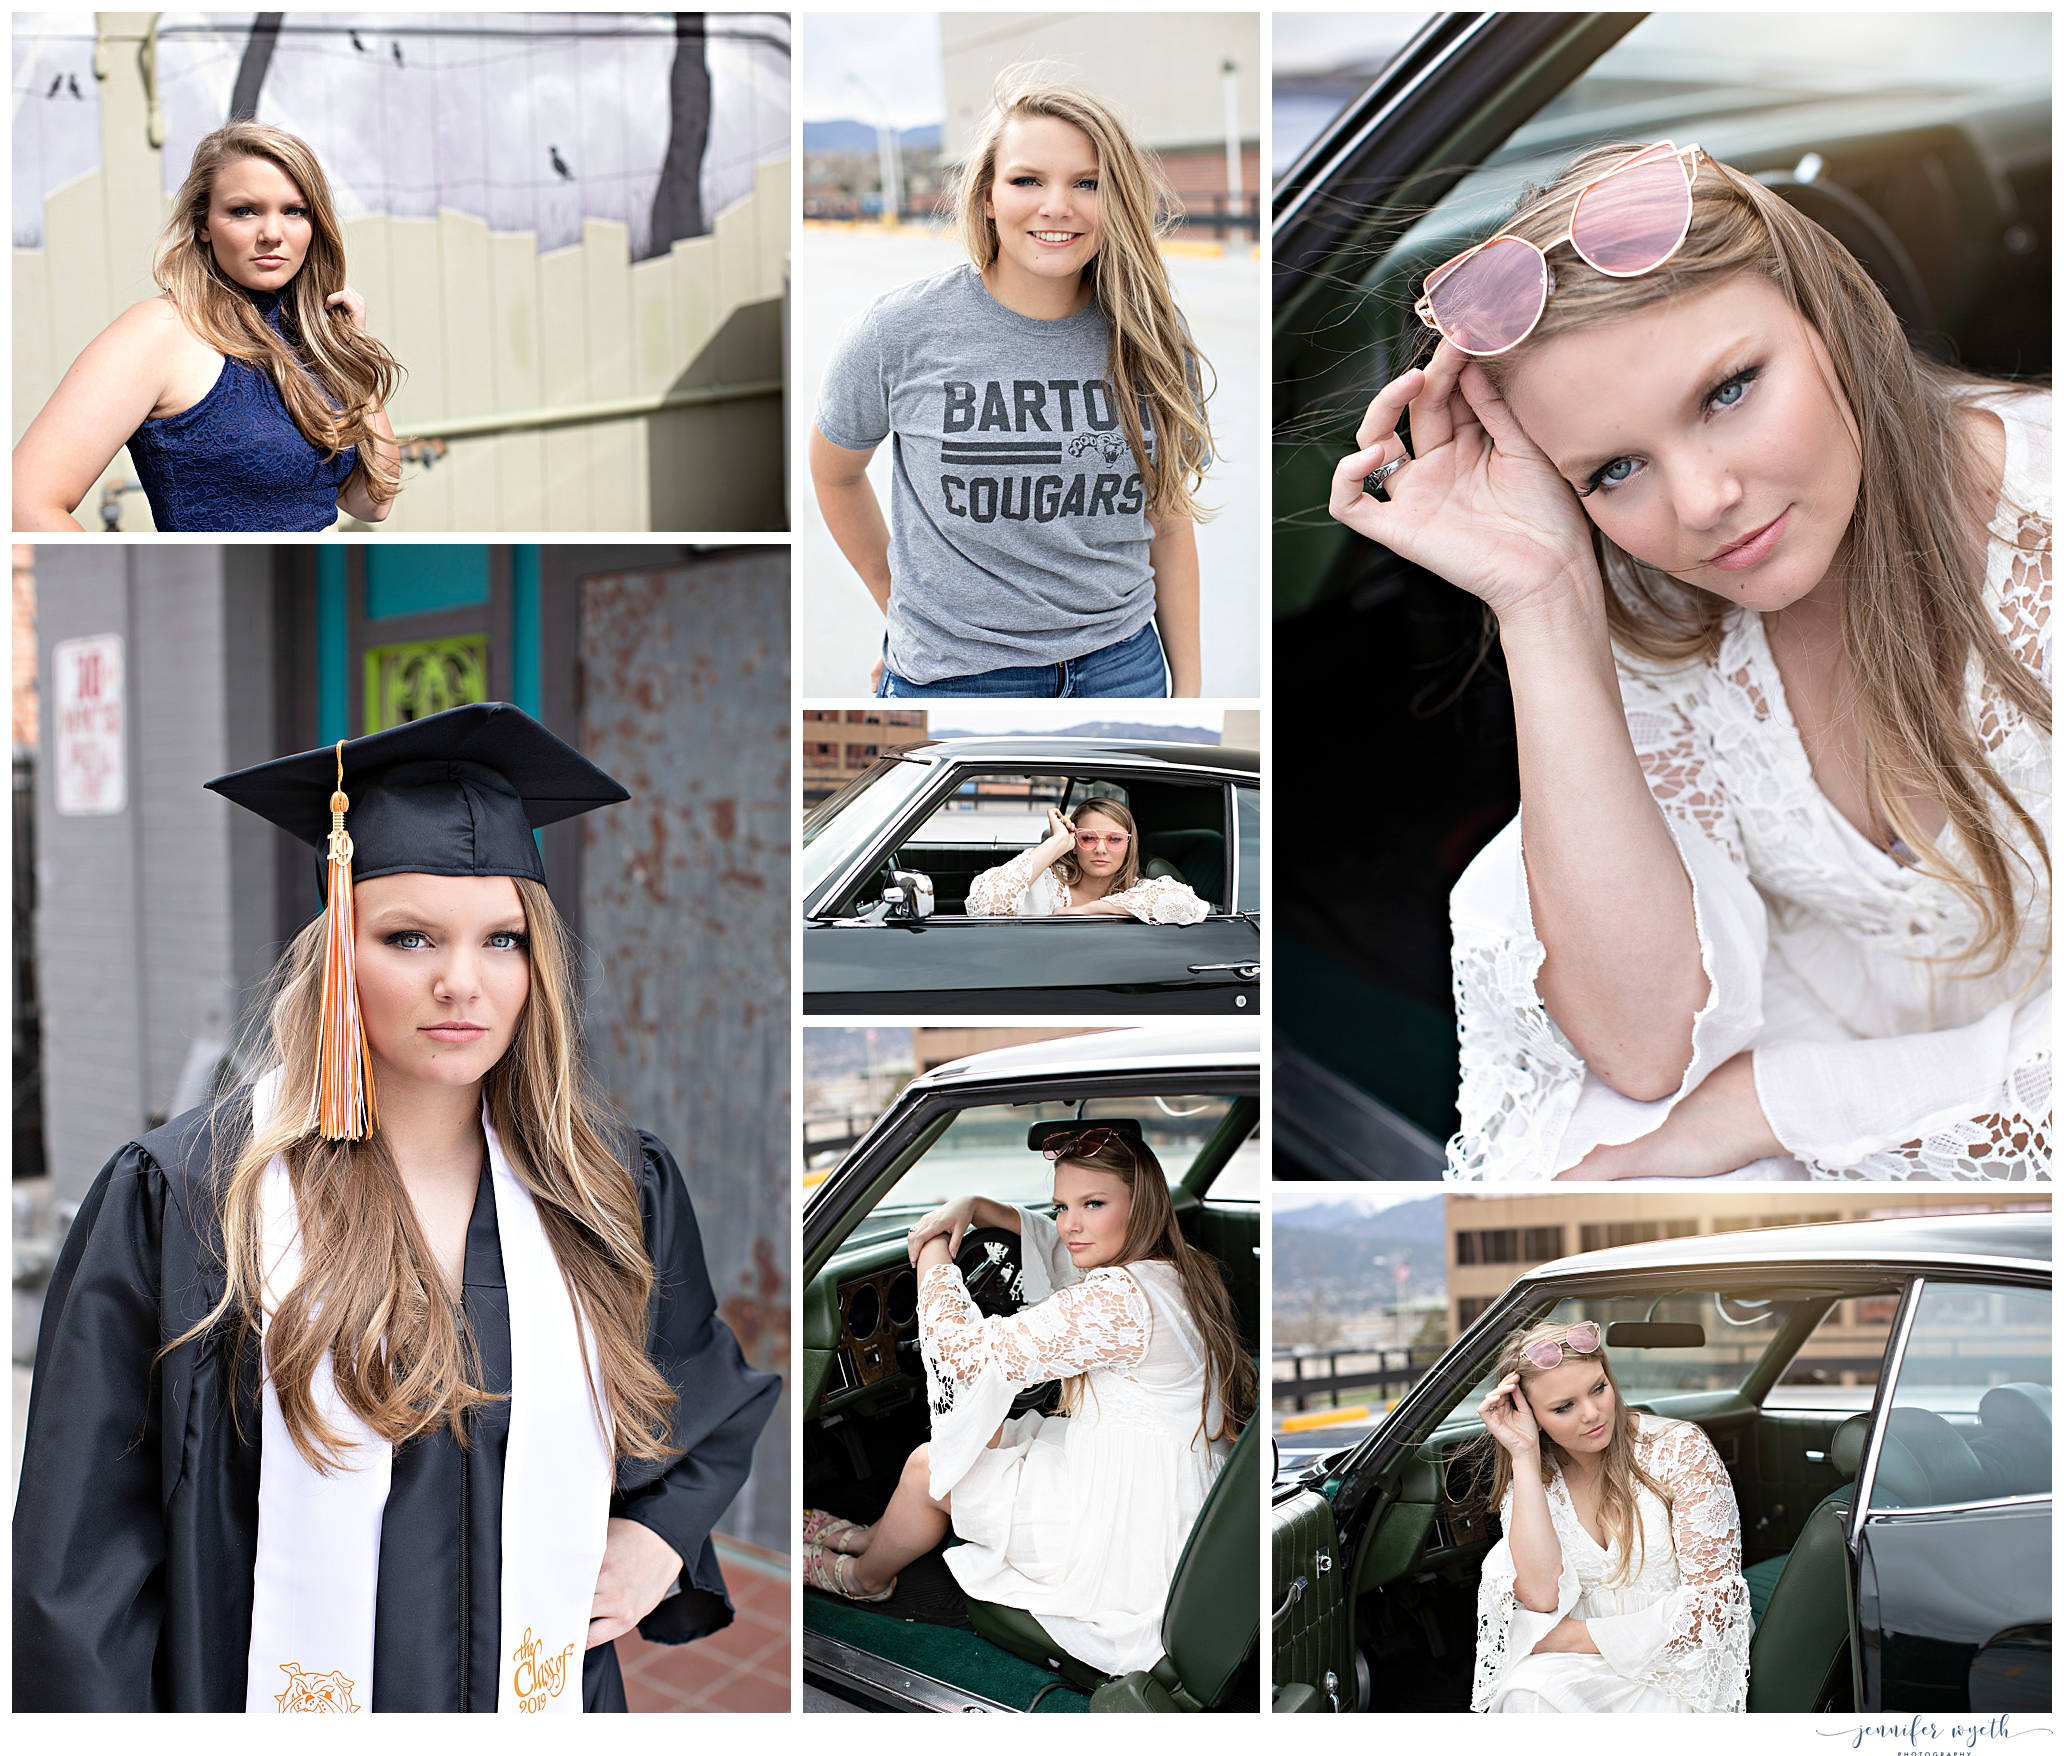 Jennifer-Wyeth-photography-senior-pictures-colorado-springs-photographer_0301.jpg